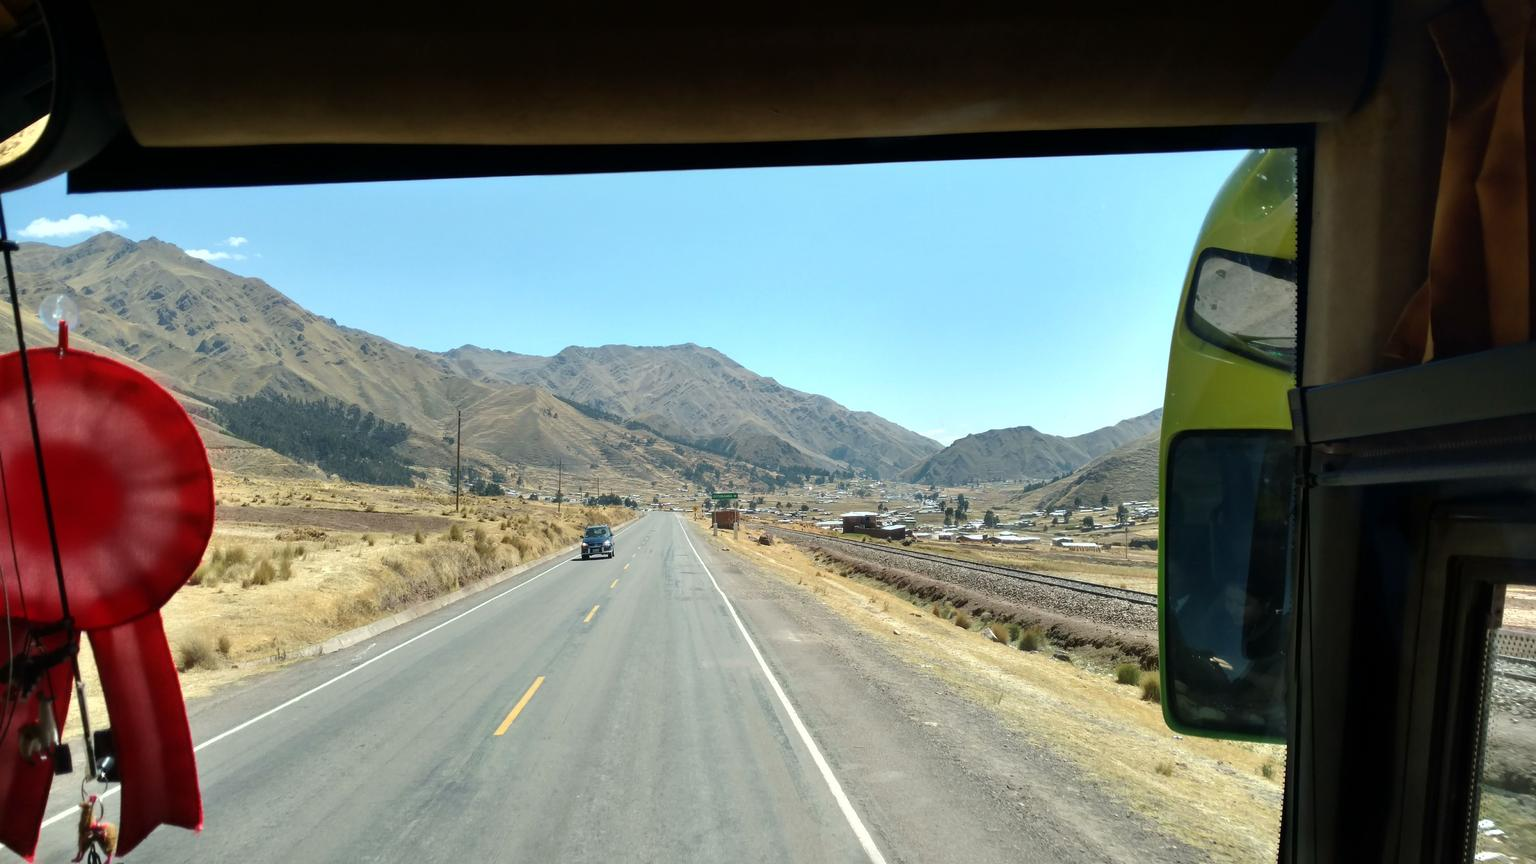 MORE PHOTOS, One-Way Scenic Bus Transfer to Puno from Cusco